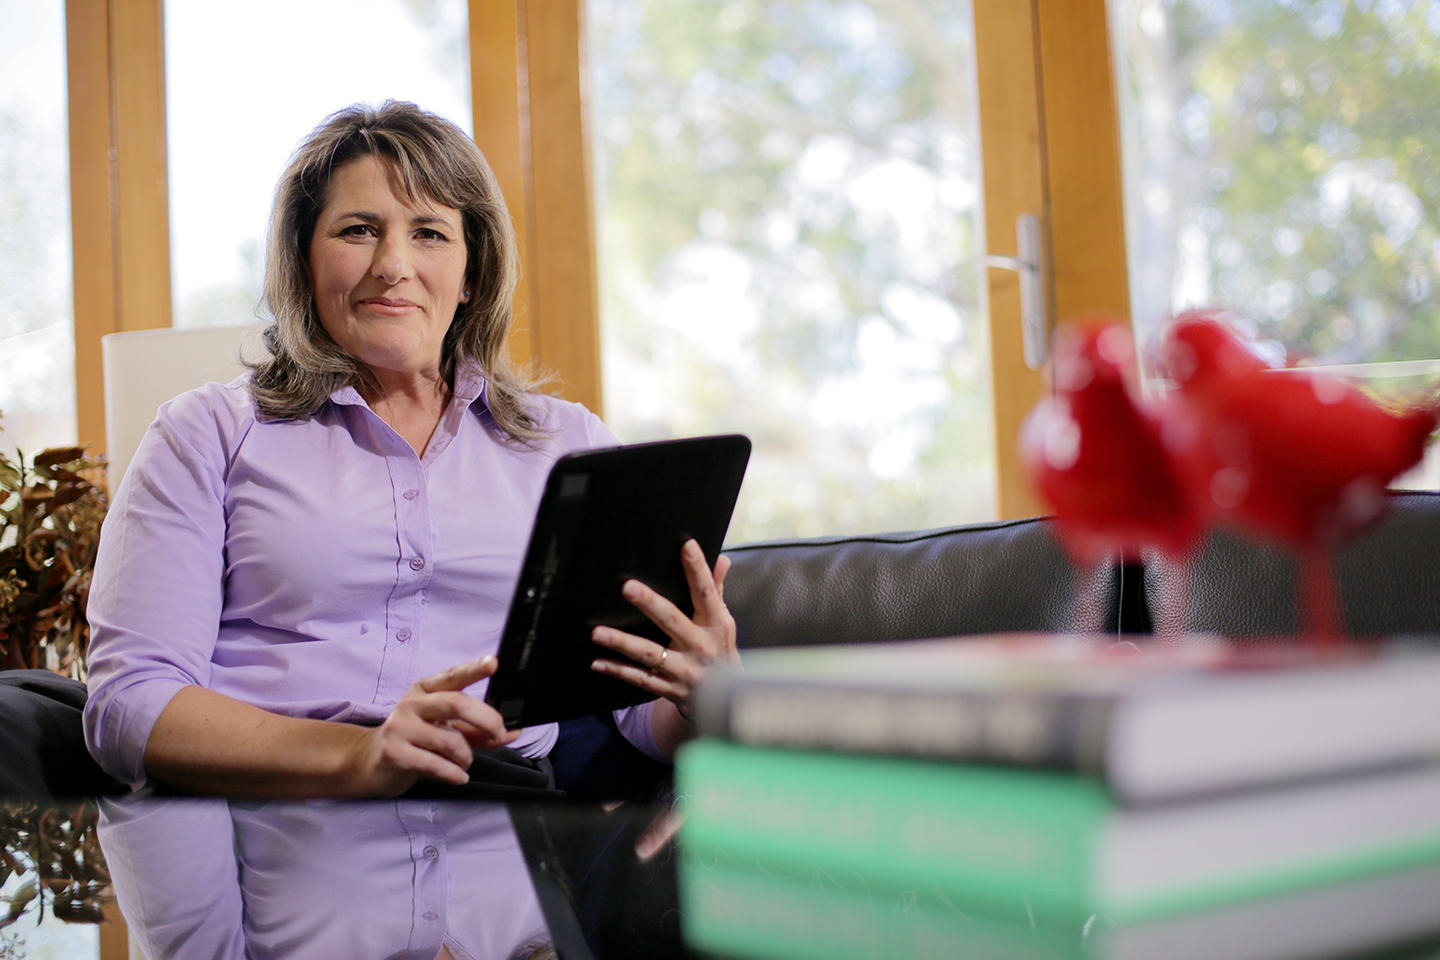 Woman holding mobile device at desk